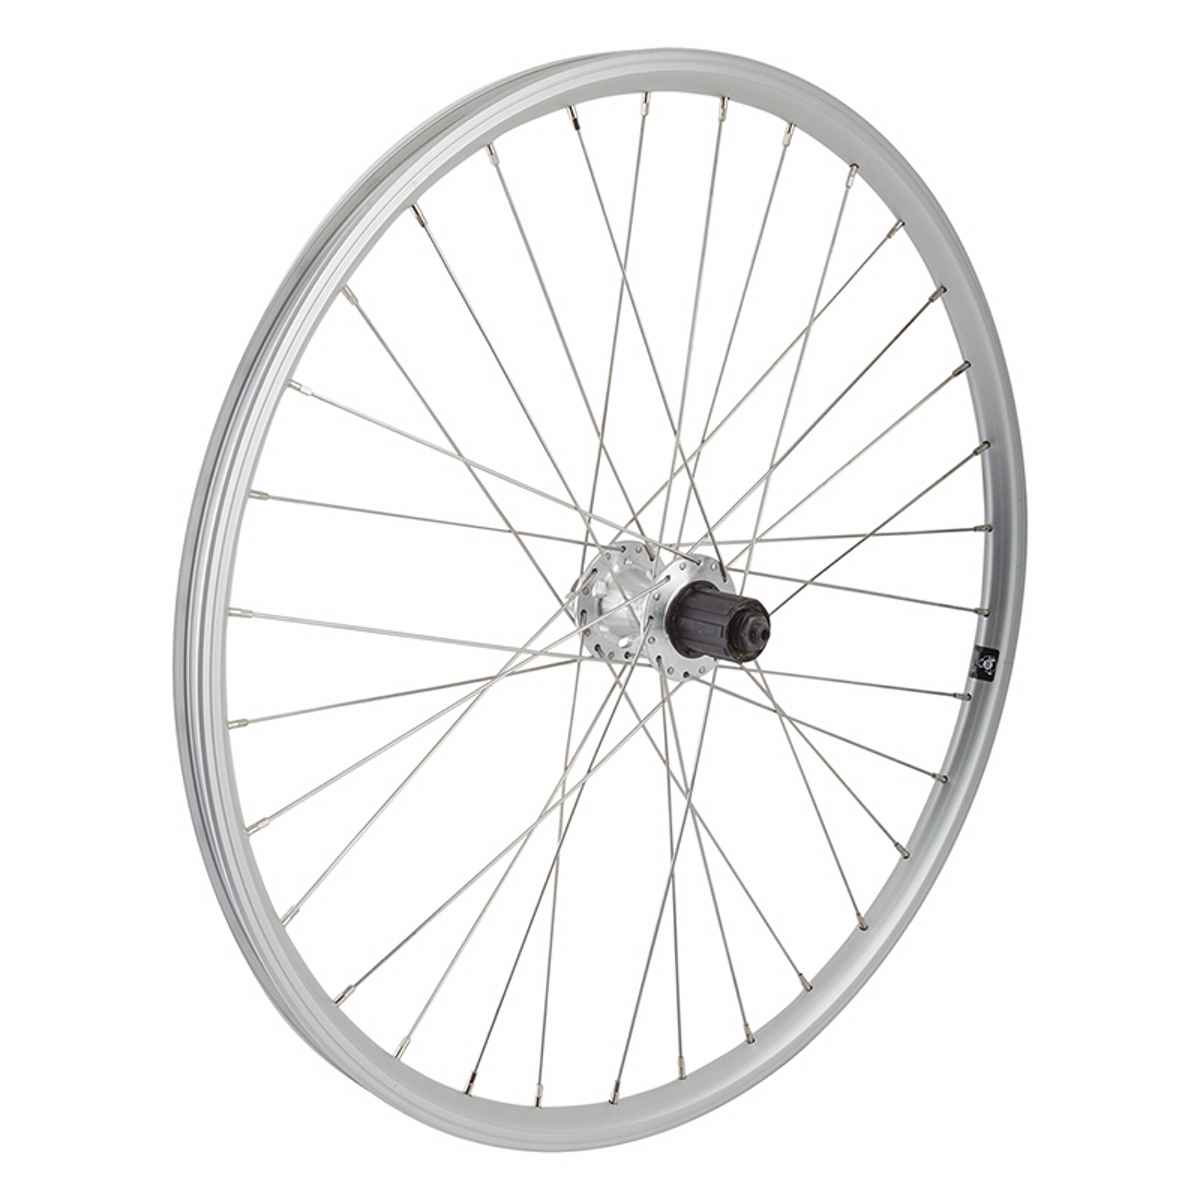 Wheel Masters 26 Inch Alloy Mountain Disc Double Wall - 741551